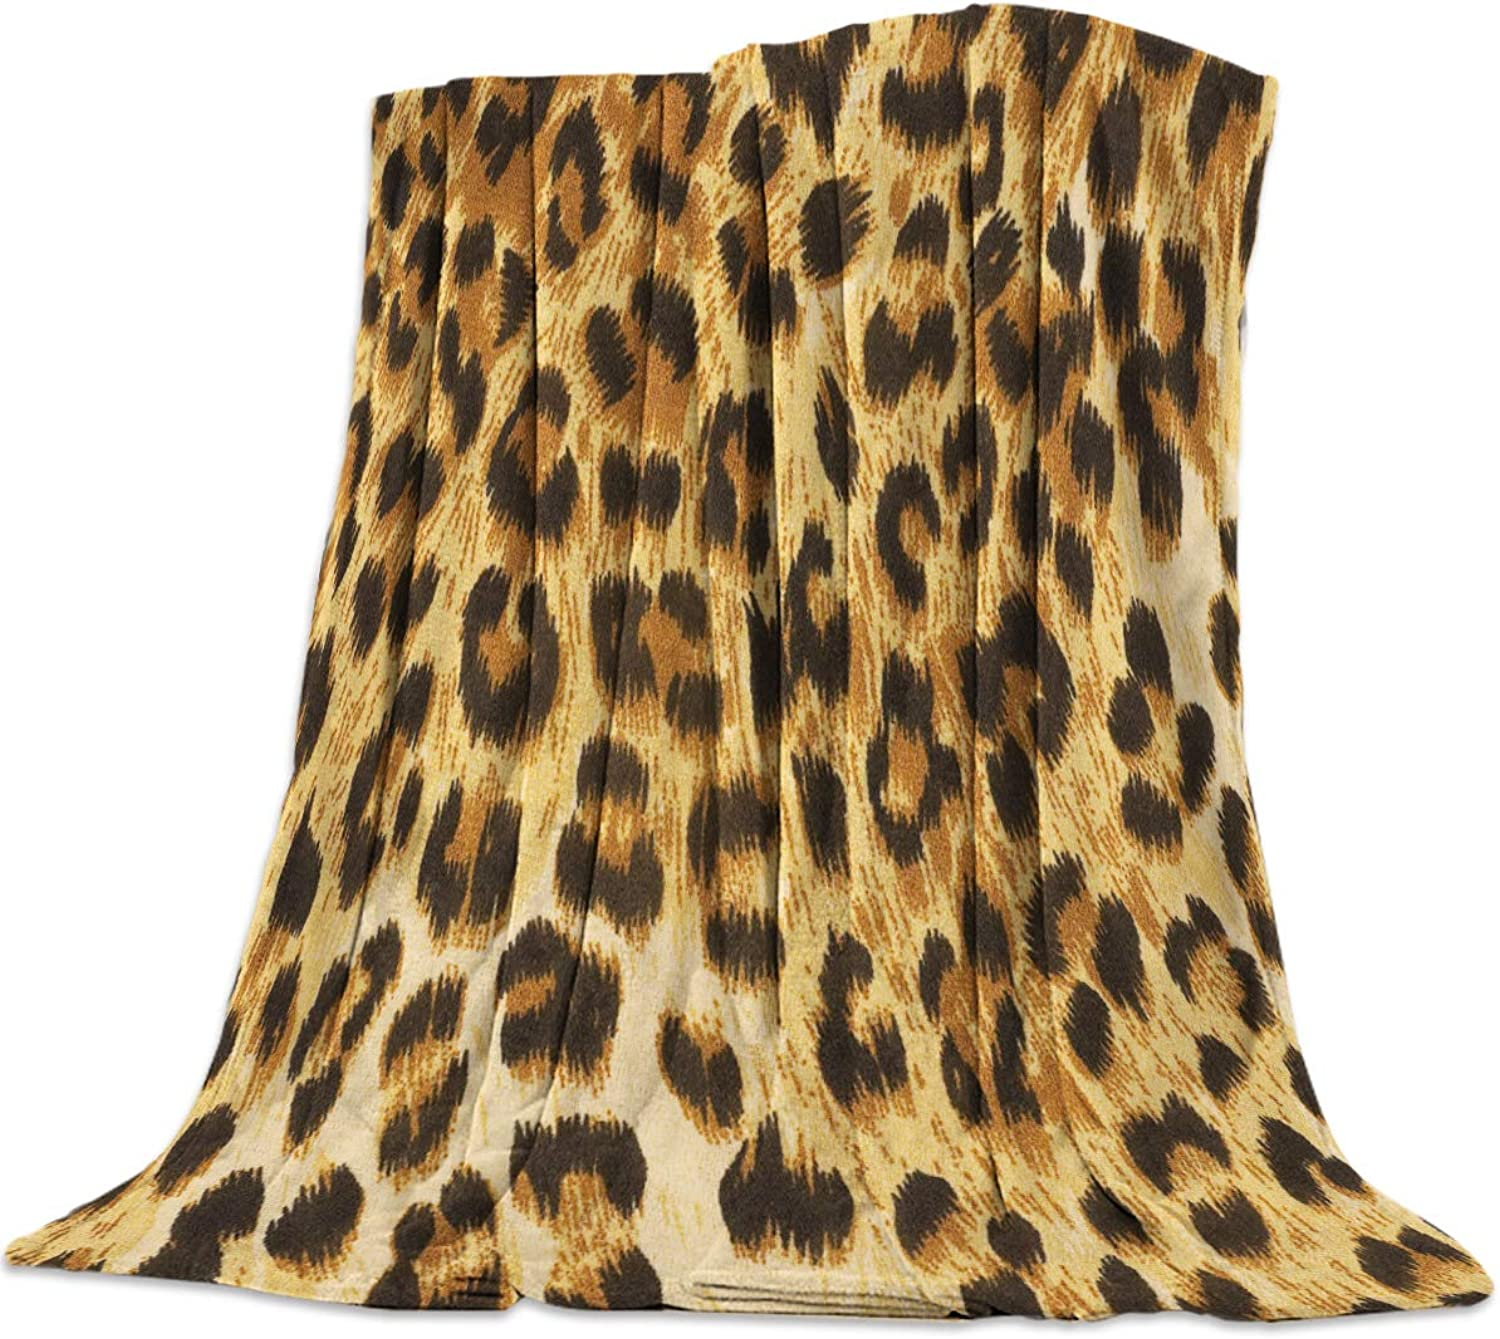 YEHO Art Gallery 39x49 Inch Flannel Fleece Bed Blanket Soft Throw-Blankets for Girls Boys,Cool 3D Leopard Leopard Print,Cozy Lightweight Blankets for Bedroom Living Room Sofa Couch